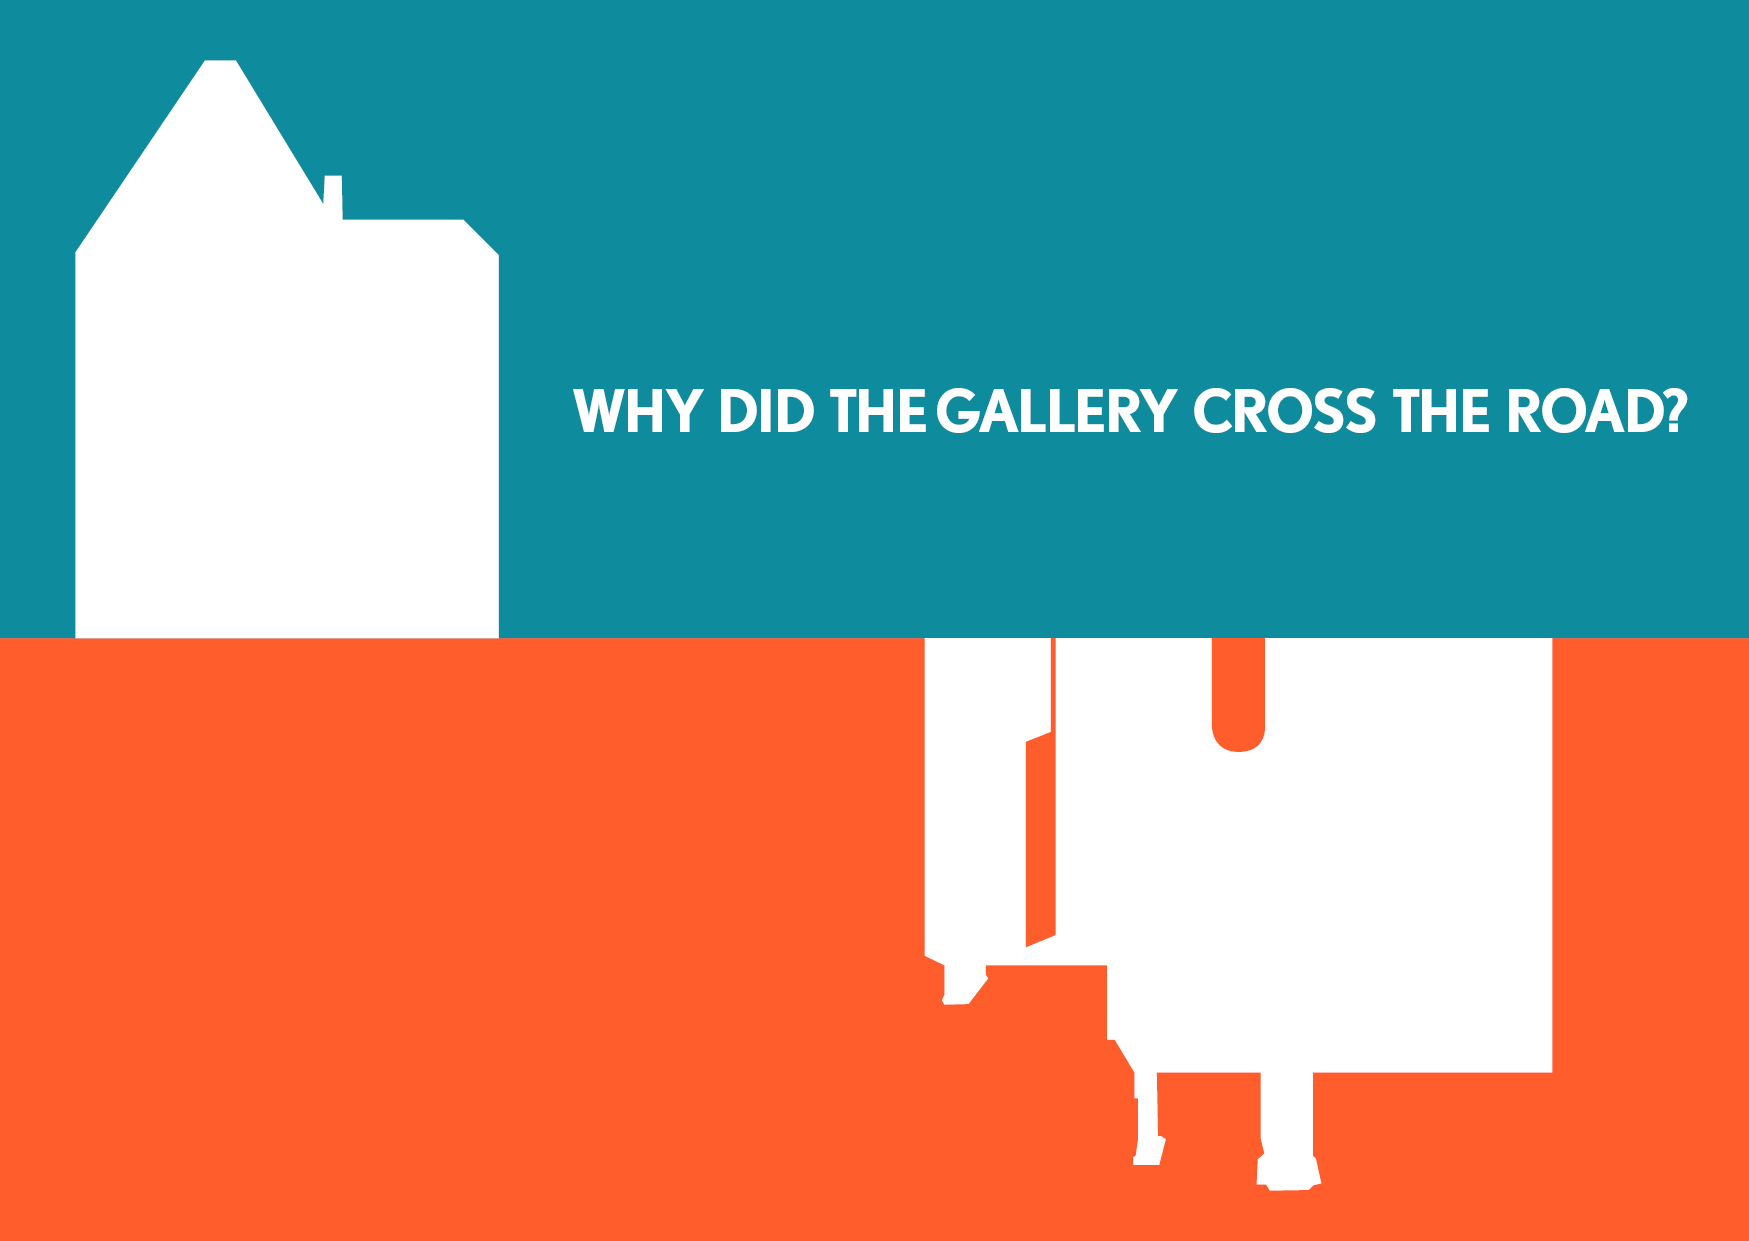 Why did the gallery cross the road?